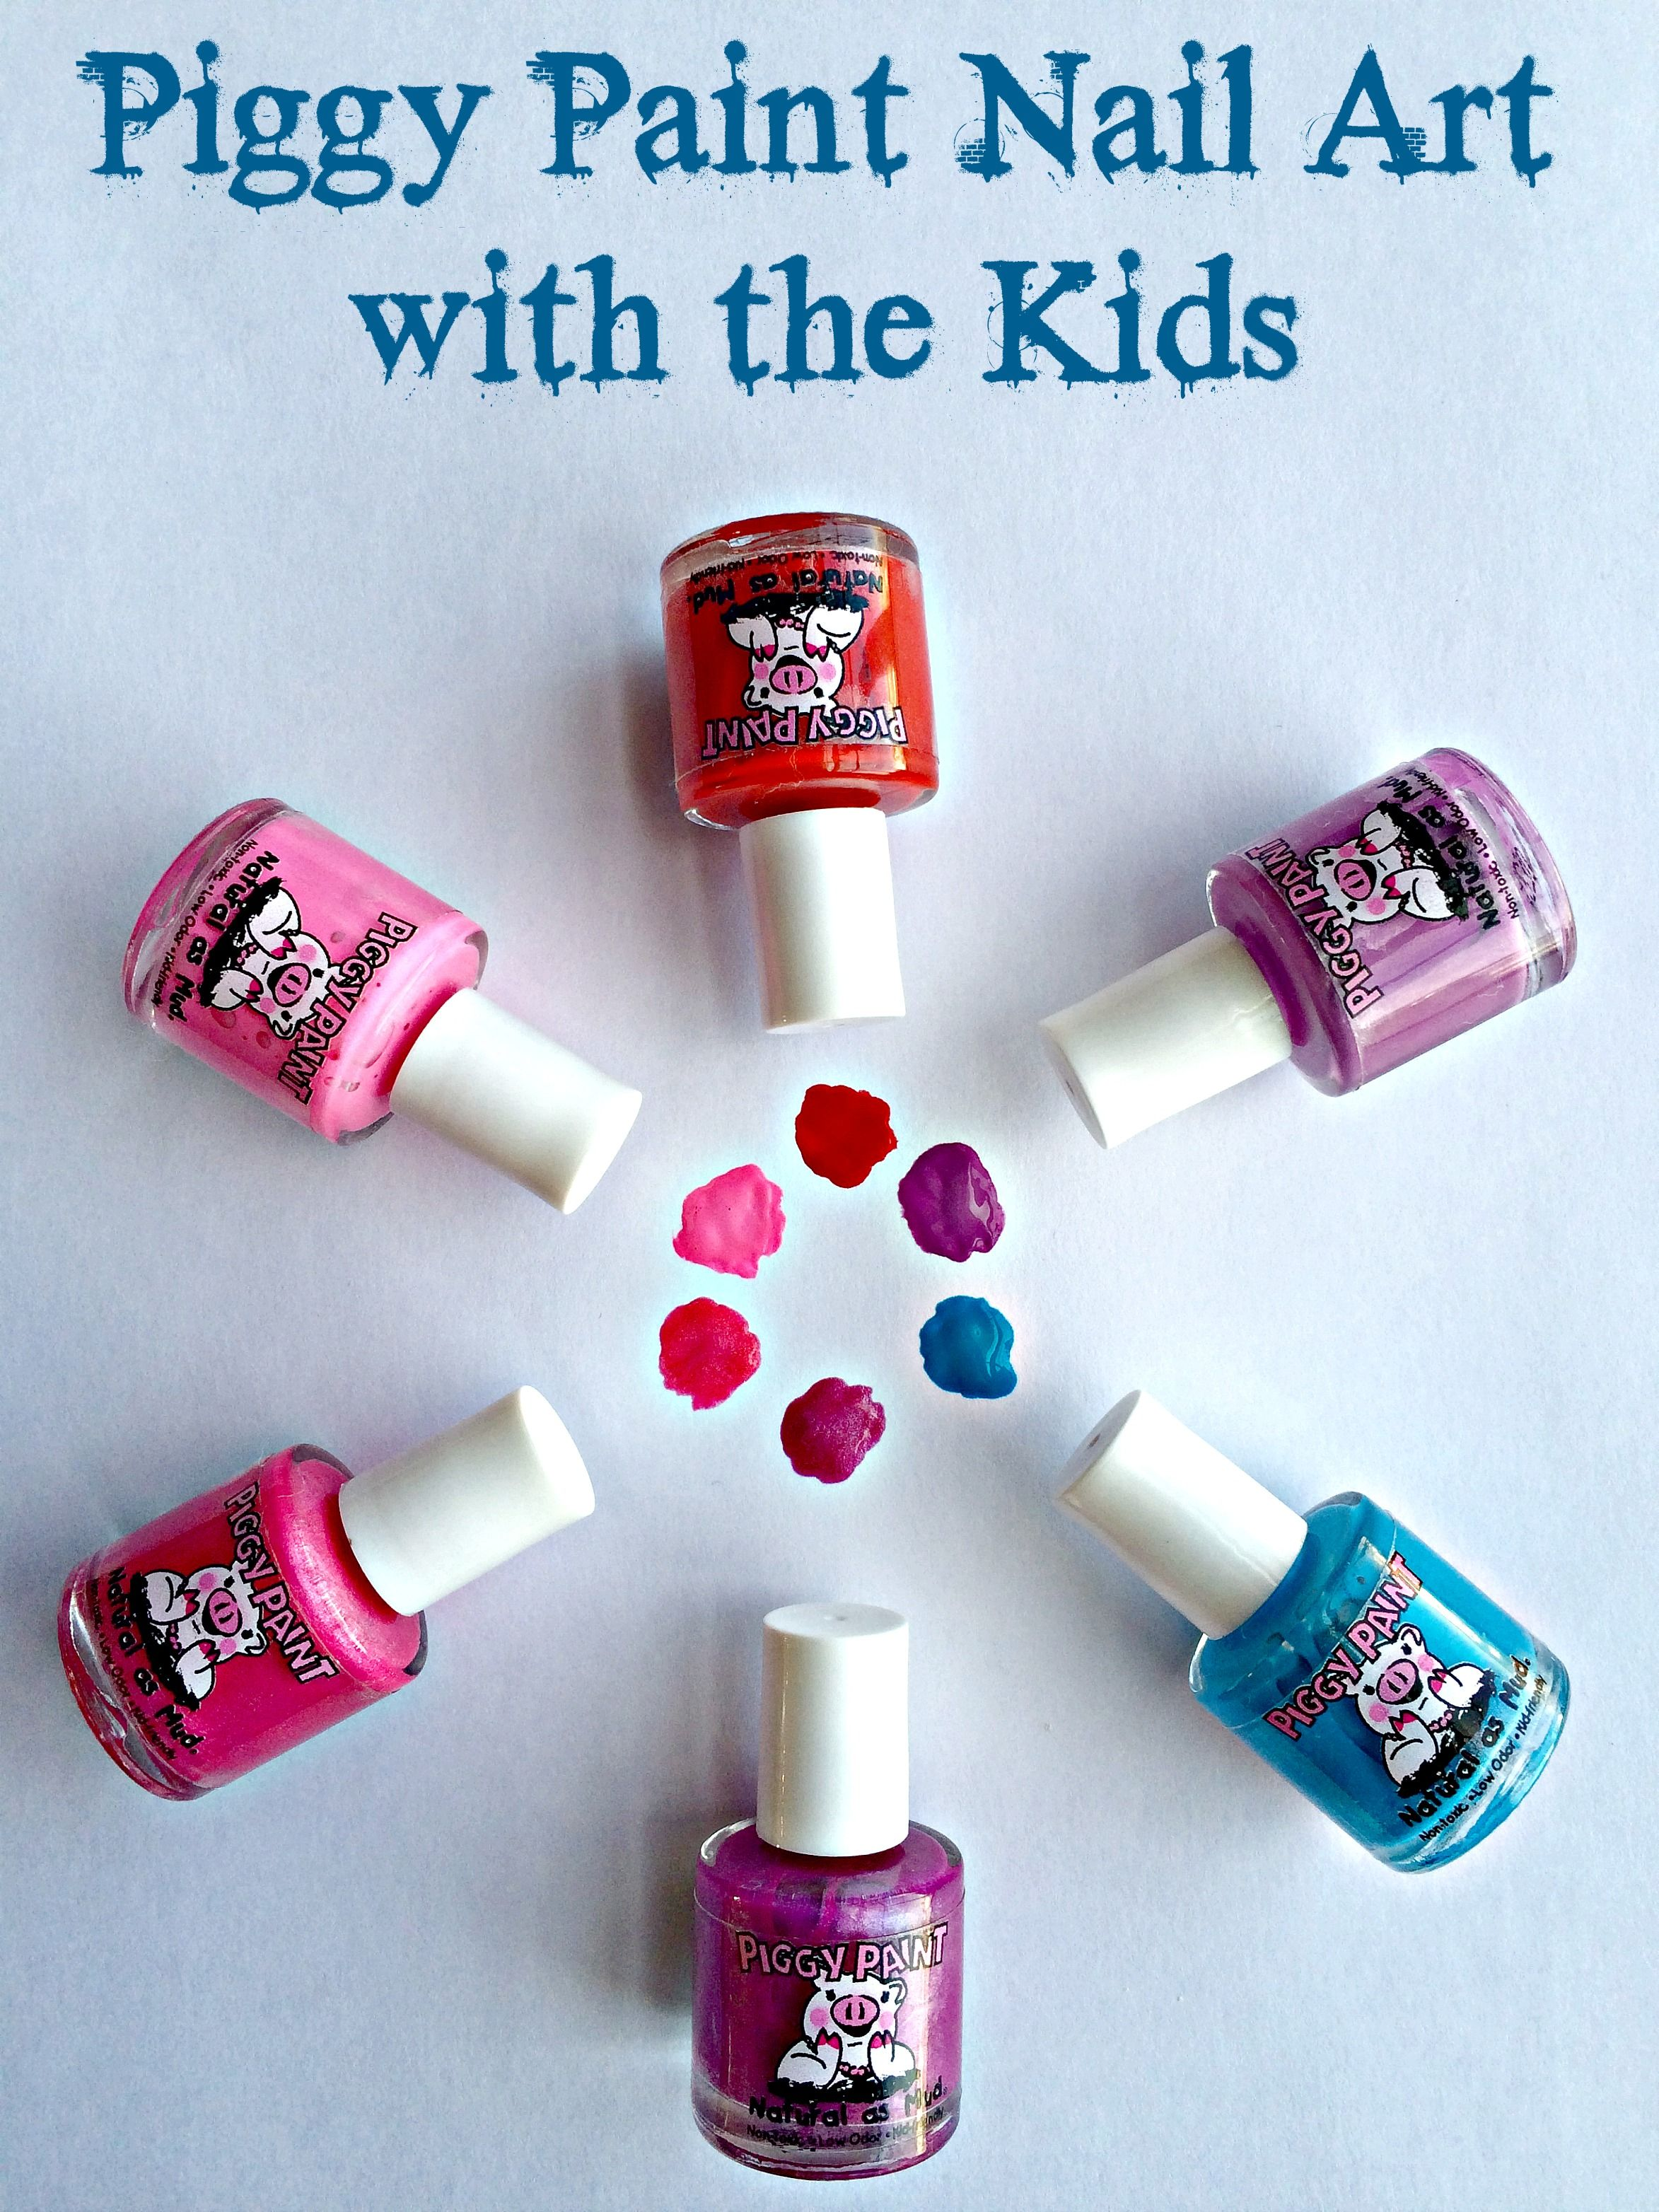 Piggy Paint Nail Art with the Kids   Painted nail art